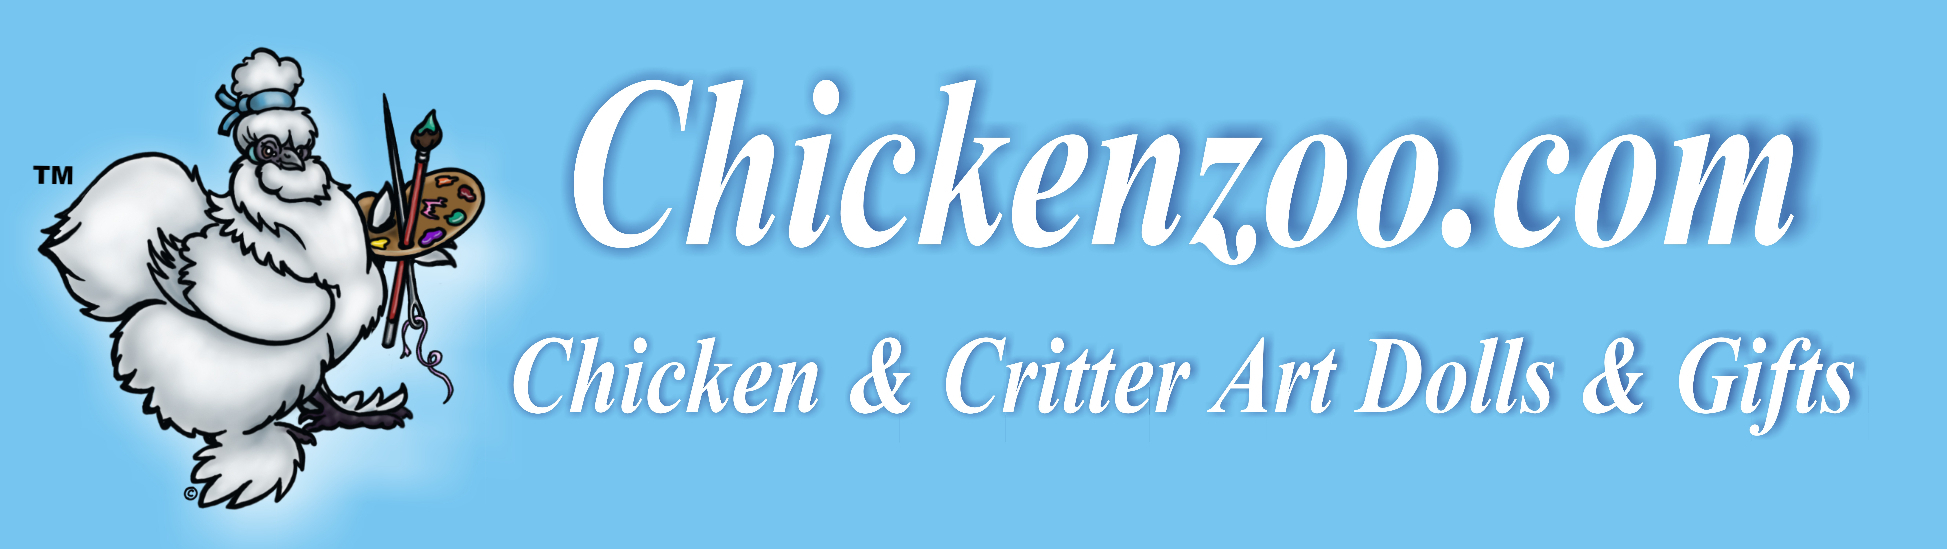 Chickenzoo, Plush Art, Decals, Gifts